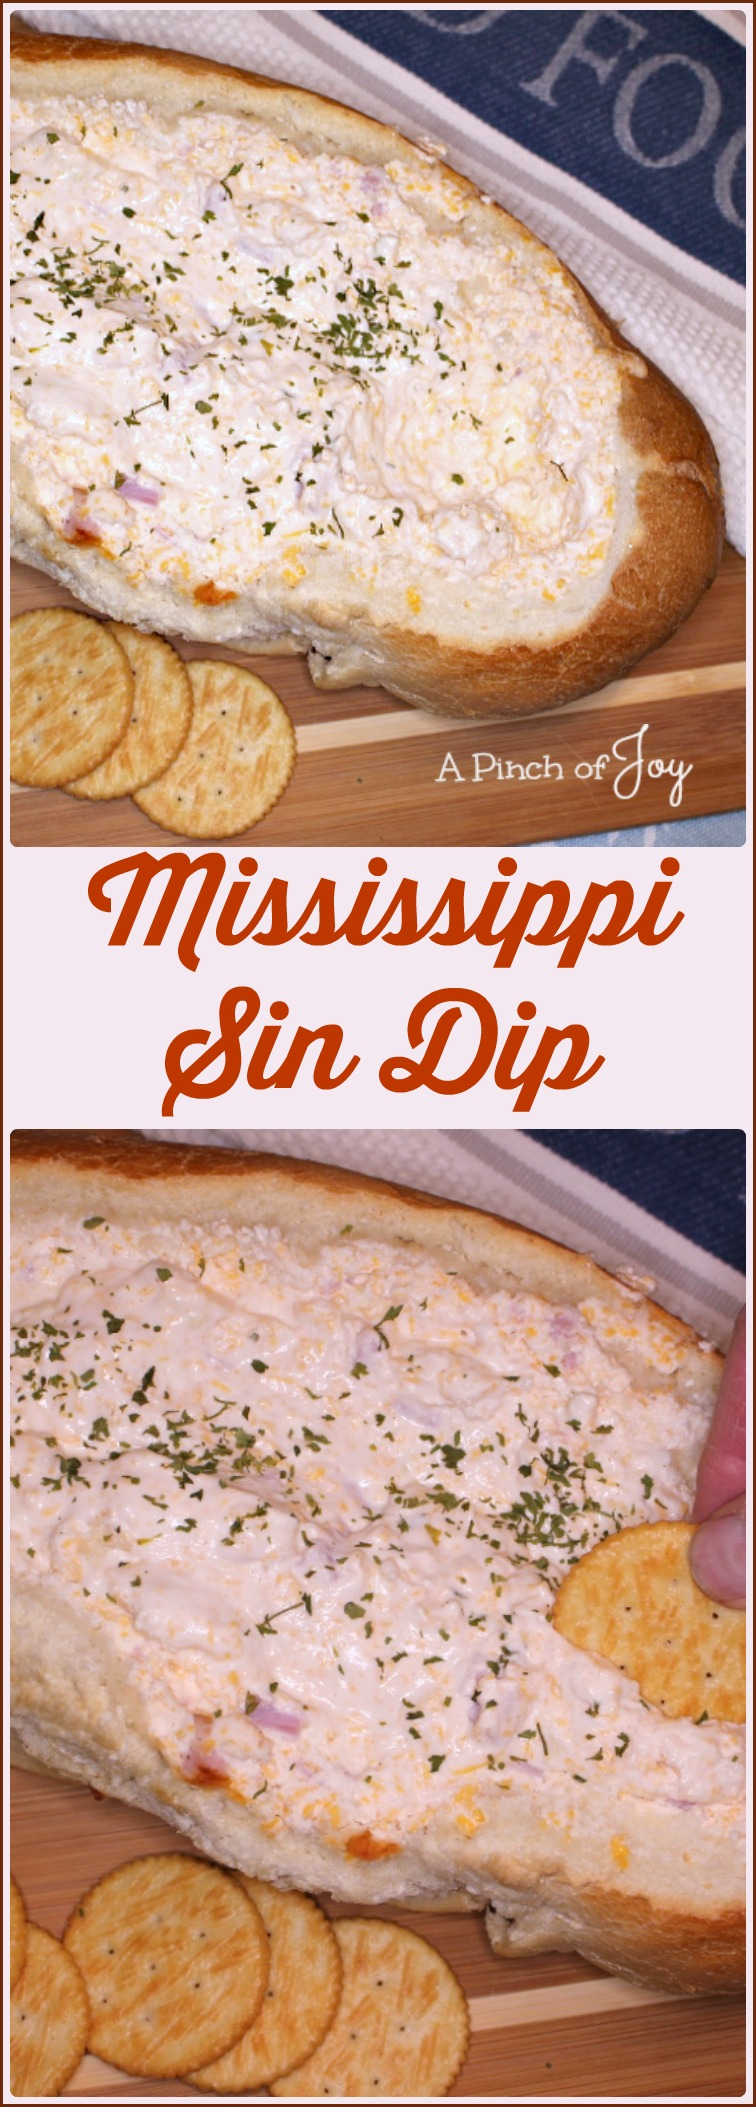 Mississippi Sin Dip -- A Pinch of Joy Creamy, melty, and so Sinfully good